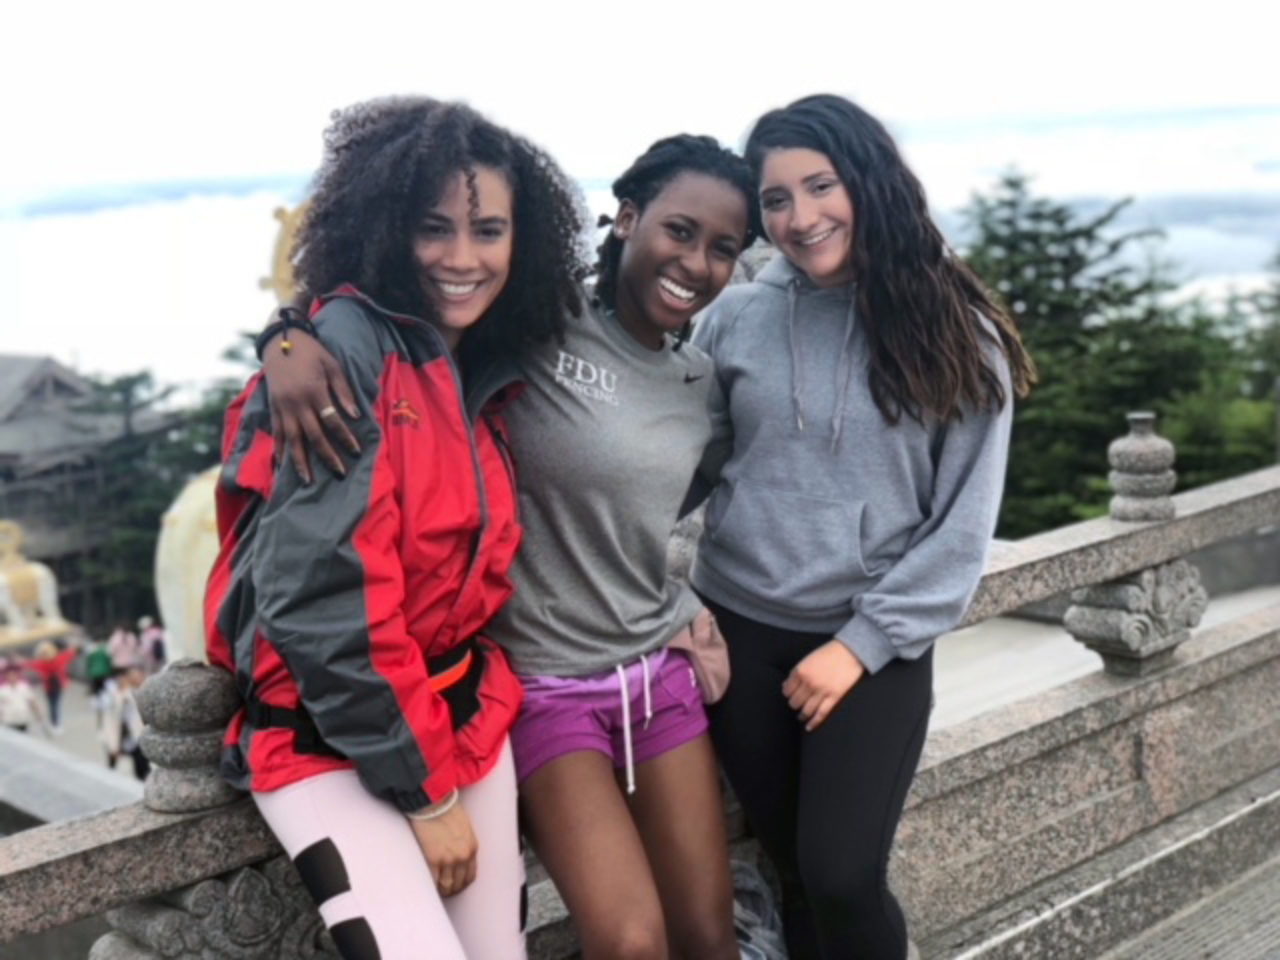 During her summer abroad, Jannice Santiago became good friends with two students from FDU's Metropolitan Campus, Natalia Toby and Joanne Gallegos. The trio ventured to see the Golden Summit on Mount Emei.